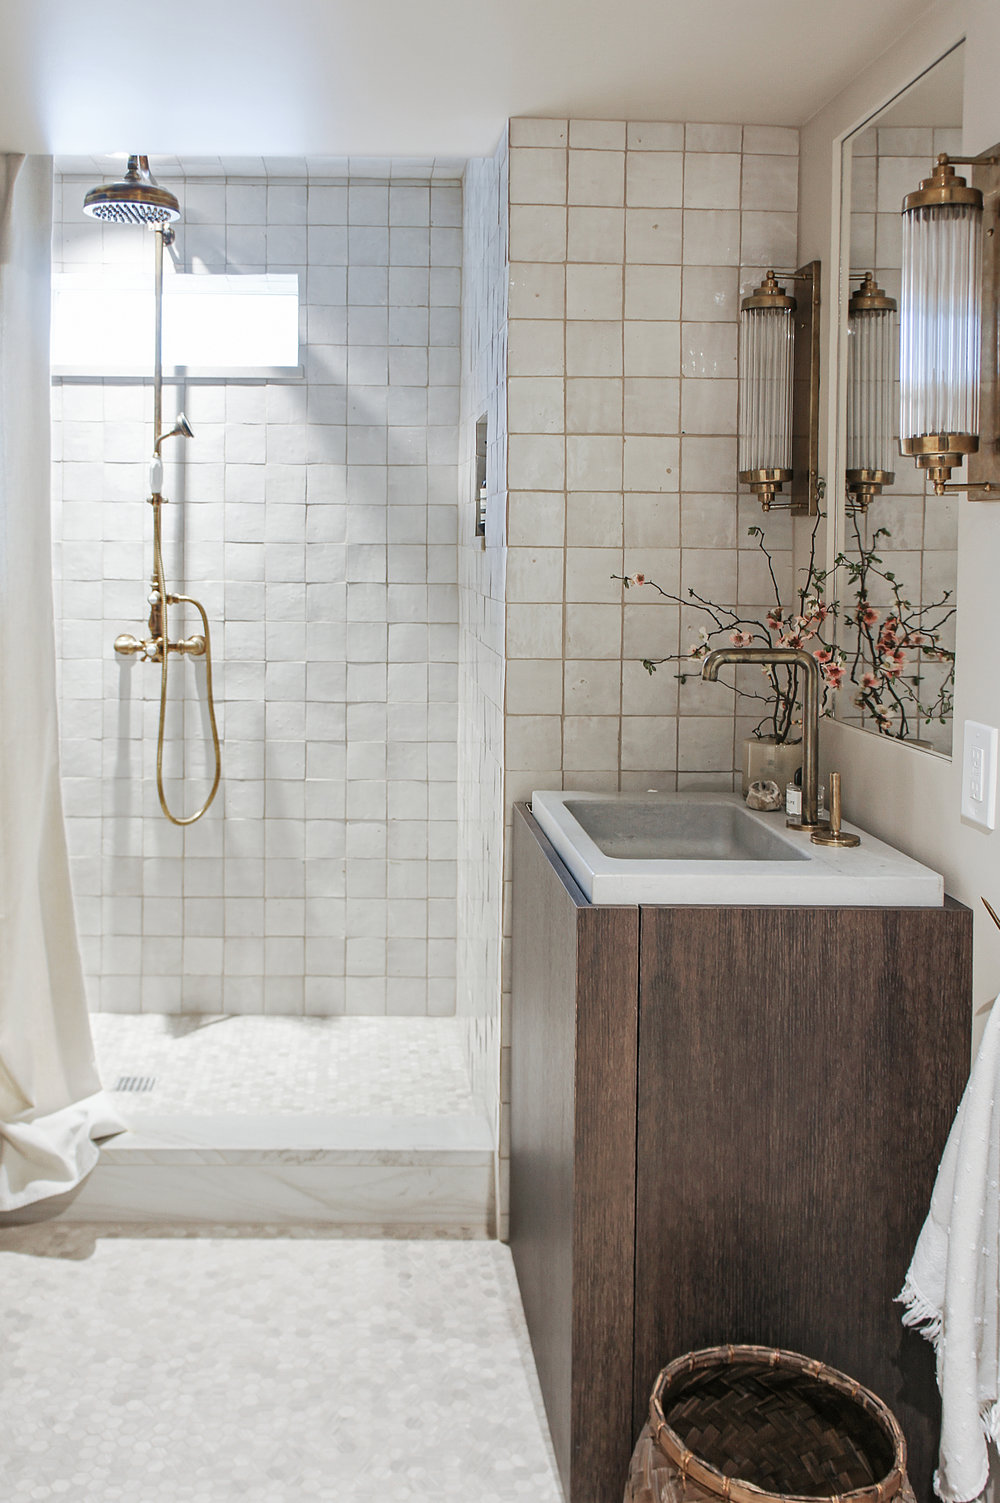 Kaemingk Design Rustic Modern Bathroom